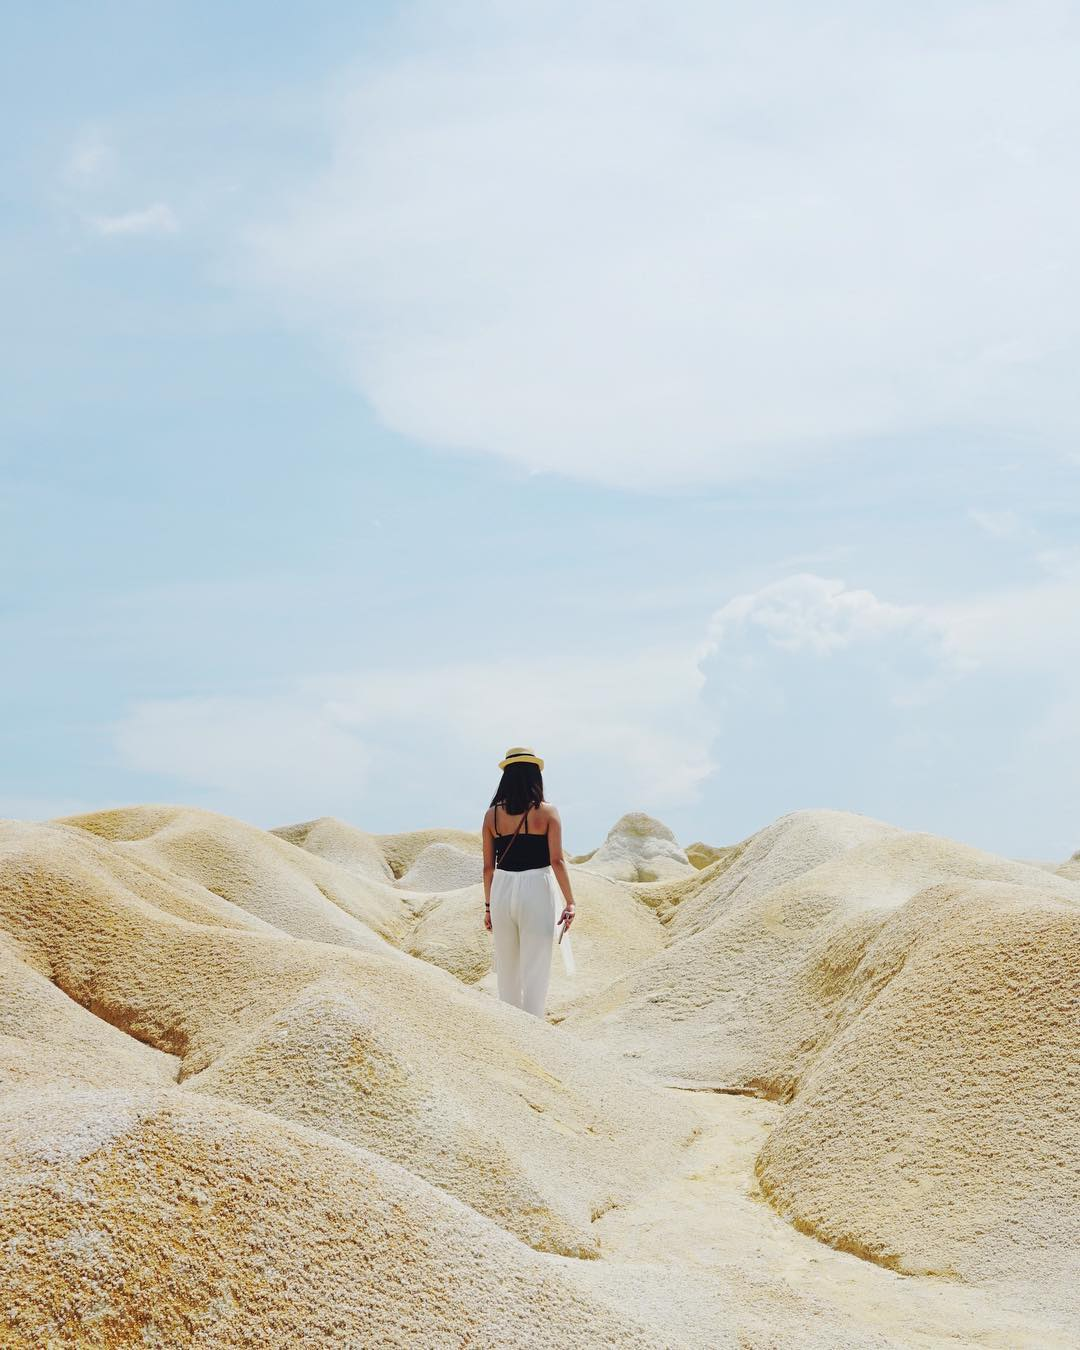 not-resort-bintan-sand-dunes